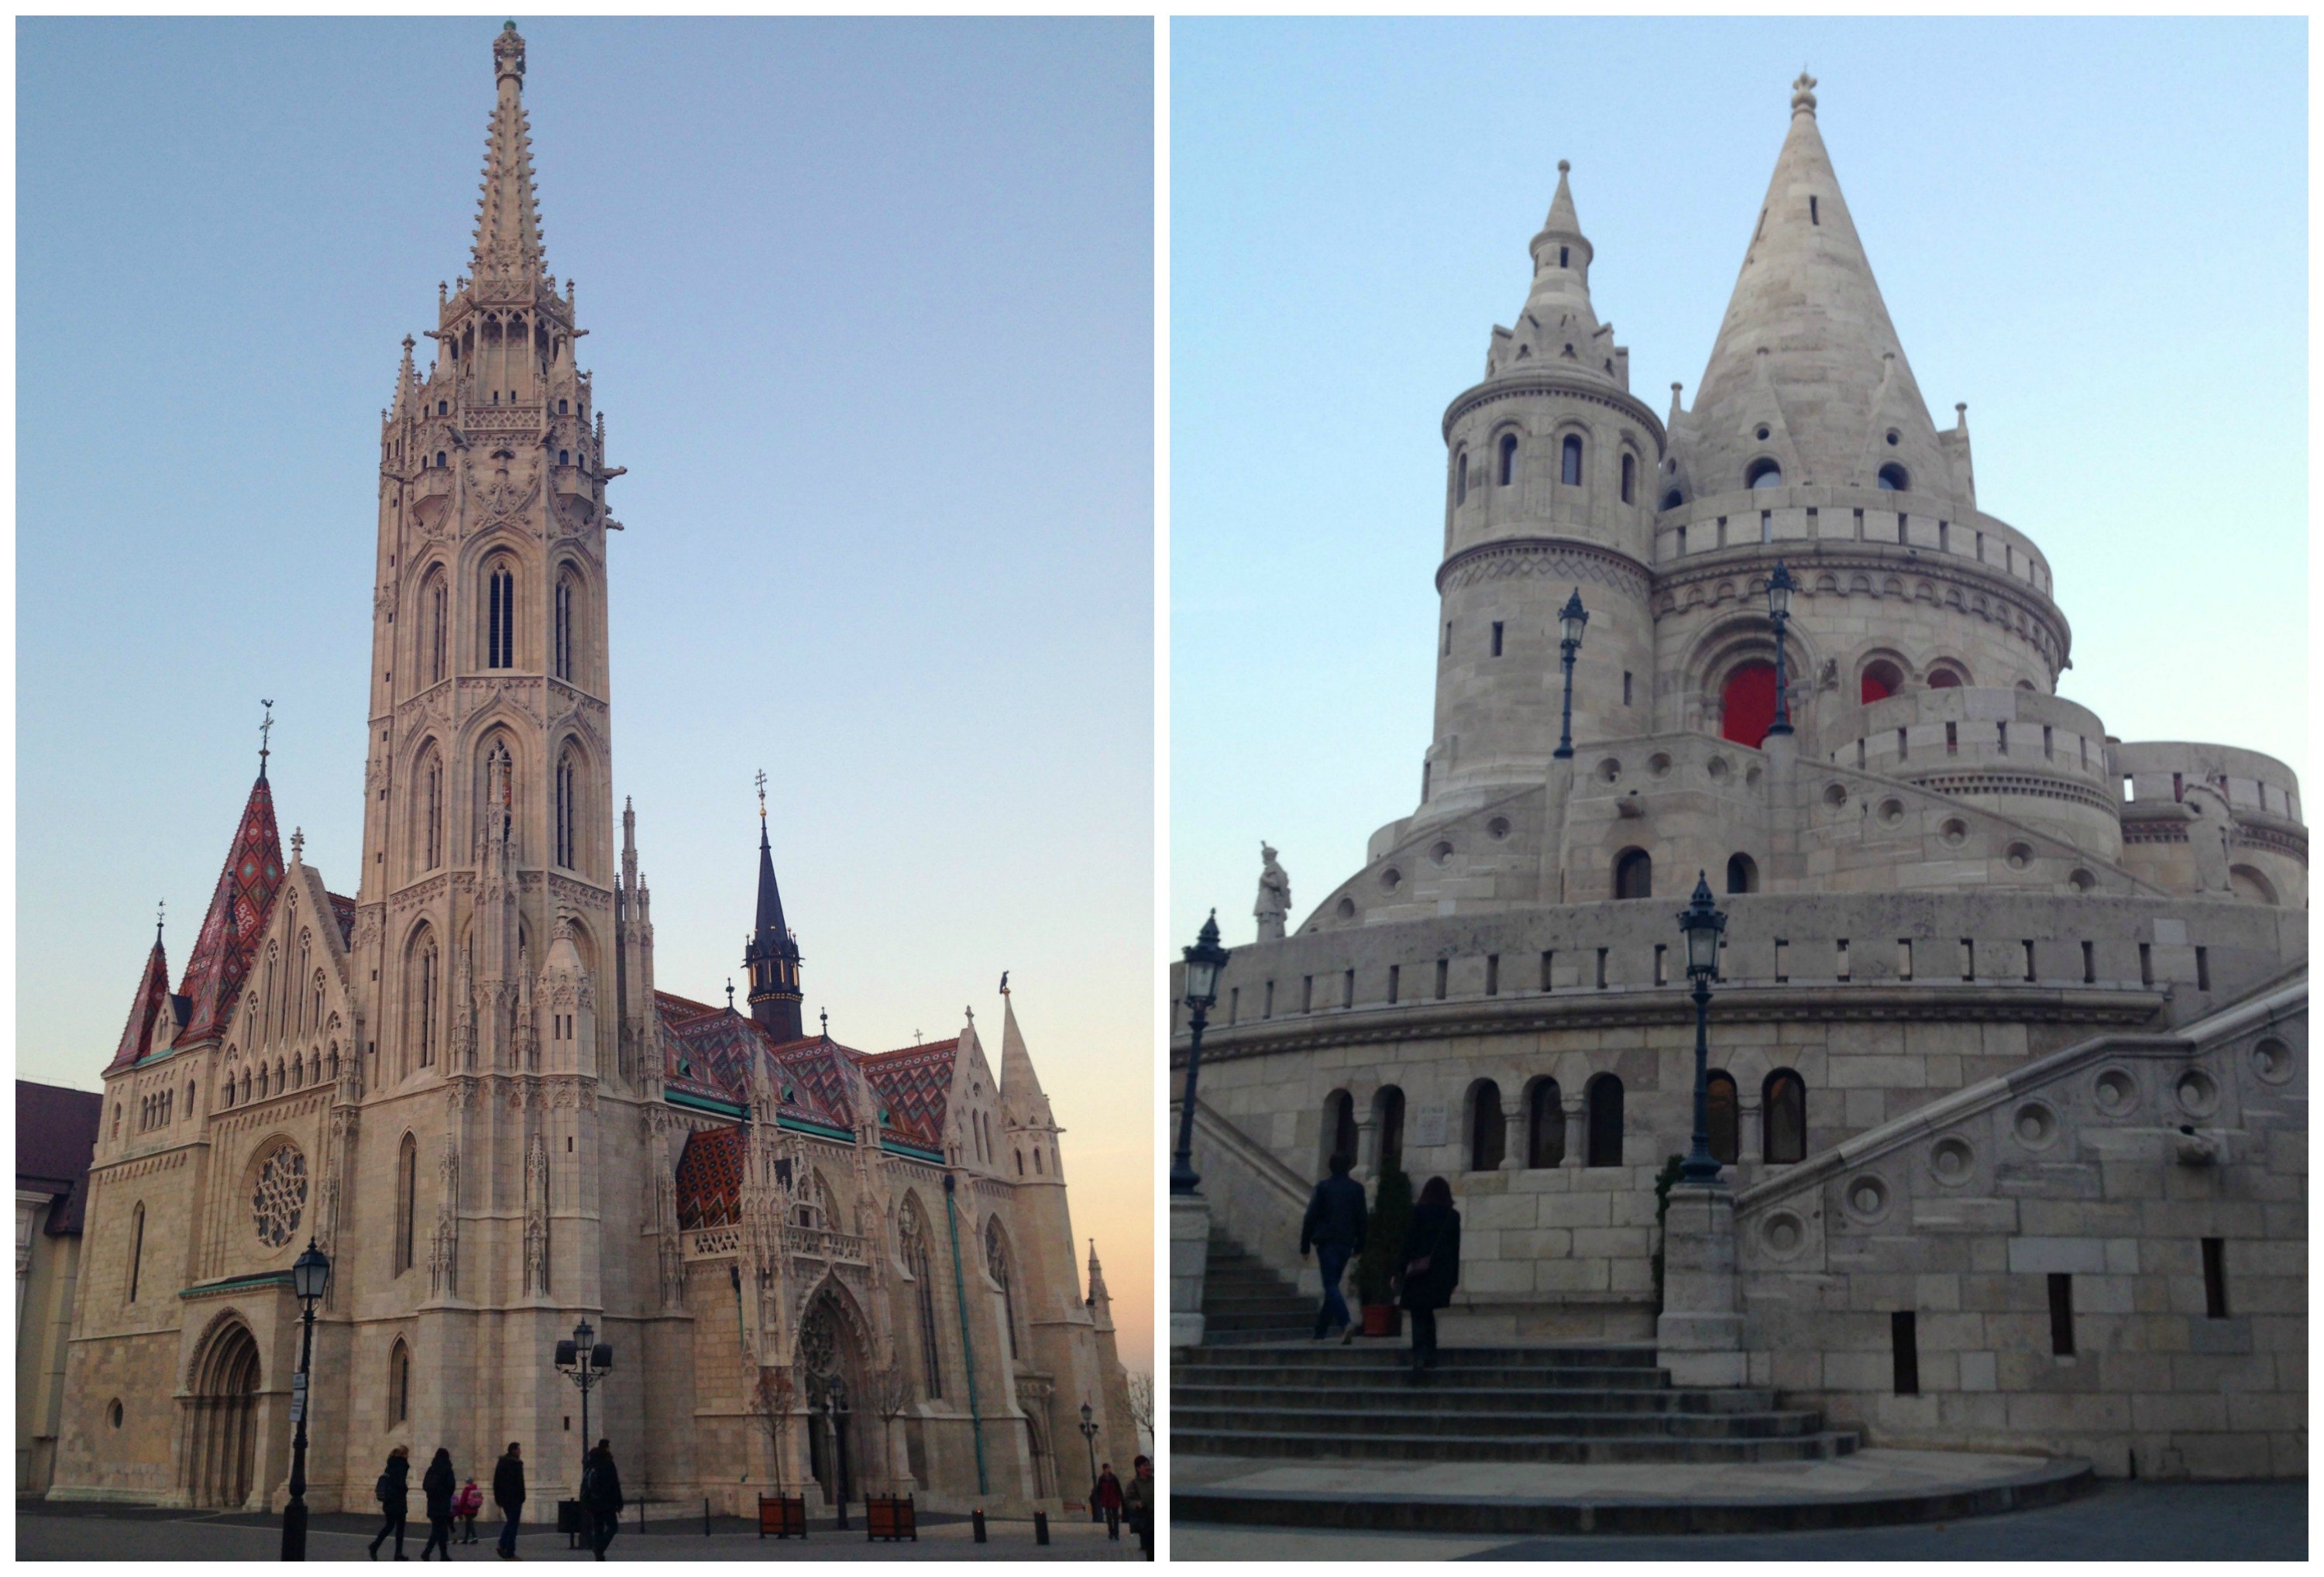 Mathias Church & Fisherman's Bastion